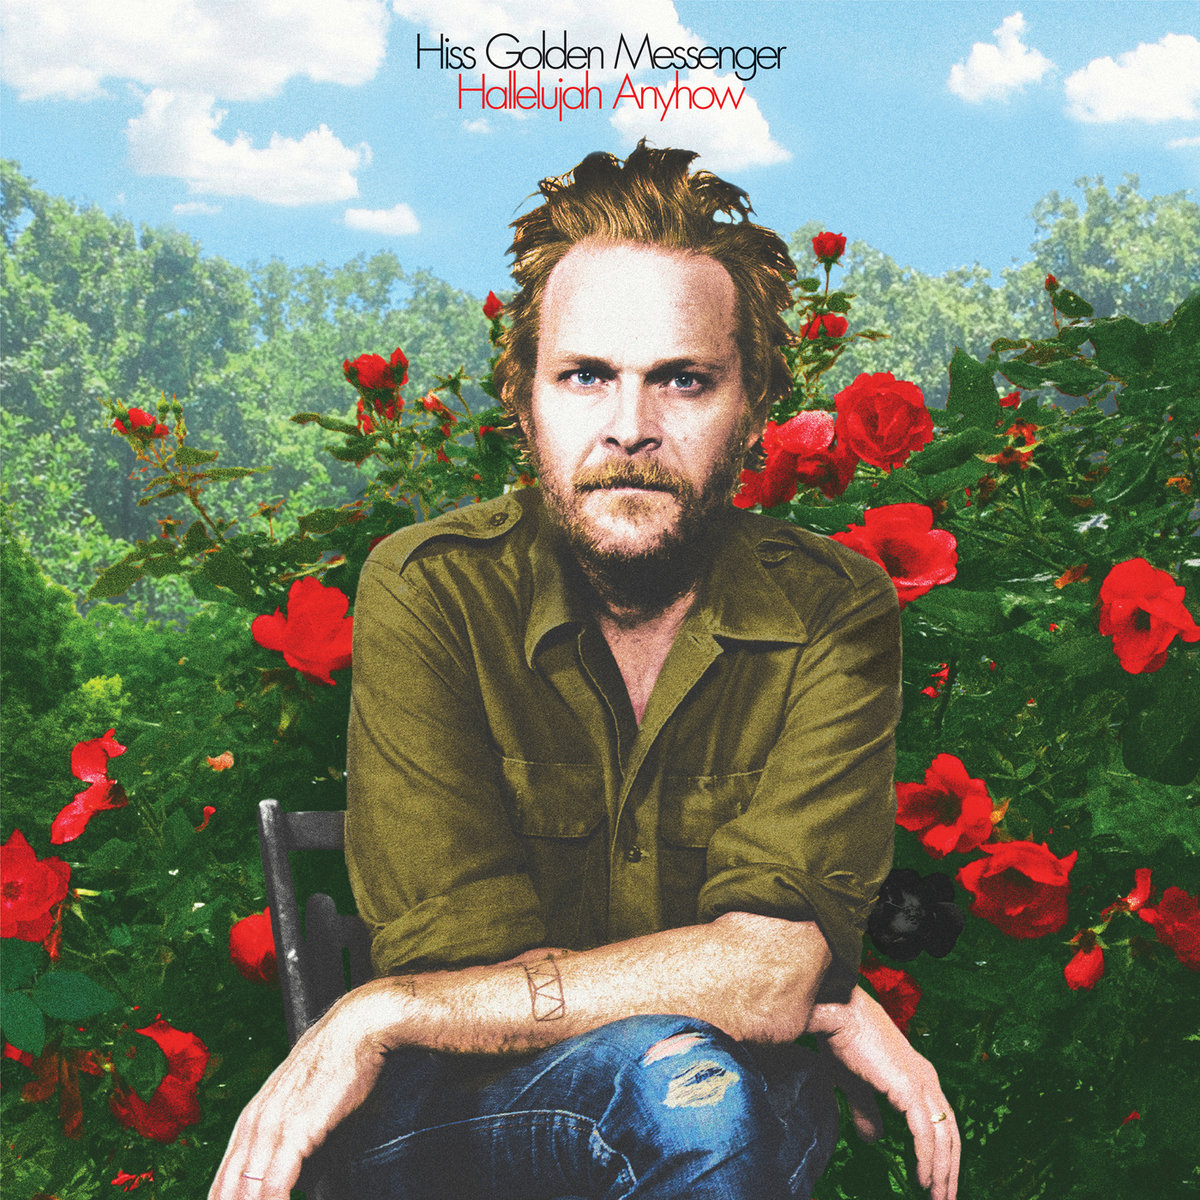 Hallelujah Anyhow    Hiss Golden Messenger    Kevin: Buy It Eduardo: Try It Marcus: Try It    LINKS   Official Site   Facebook   Twitter   Instagram     LISTEN ON   Spotify   Apple Music